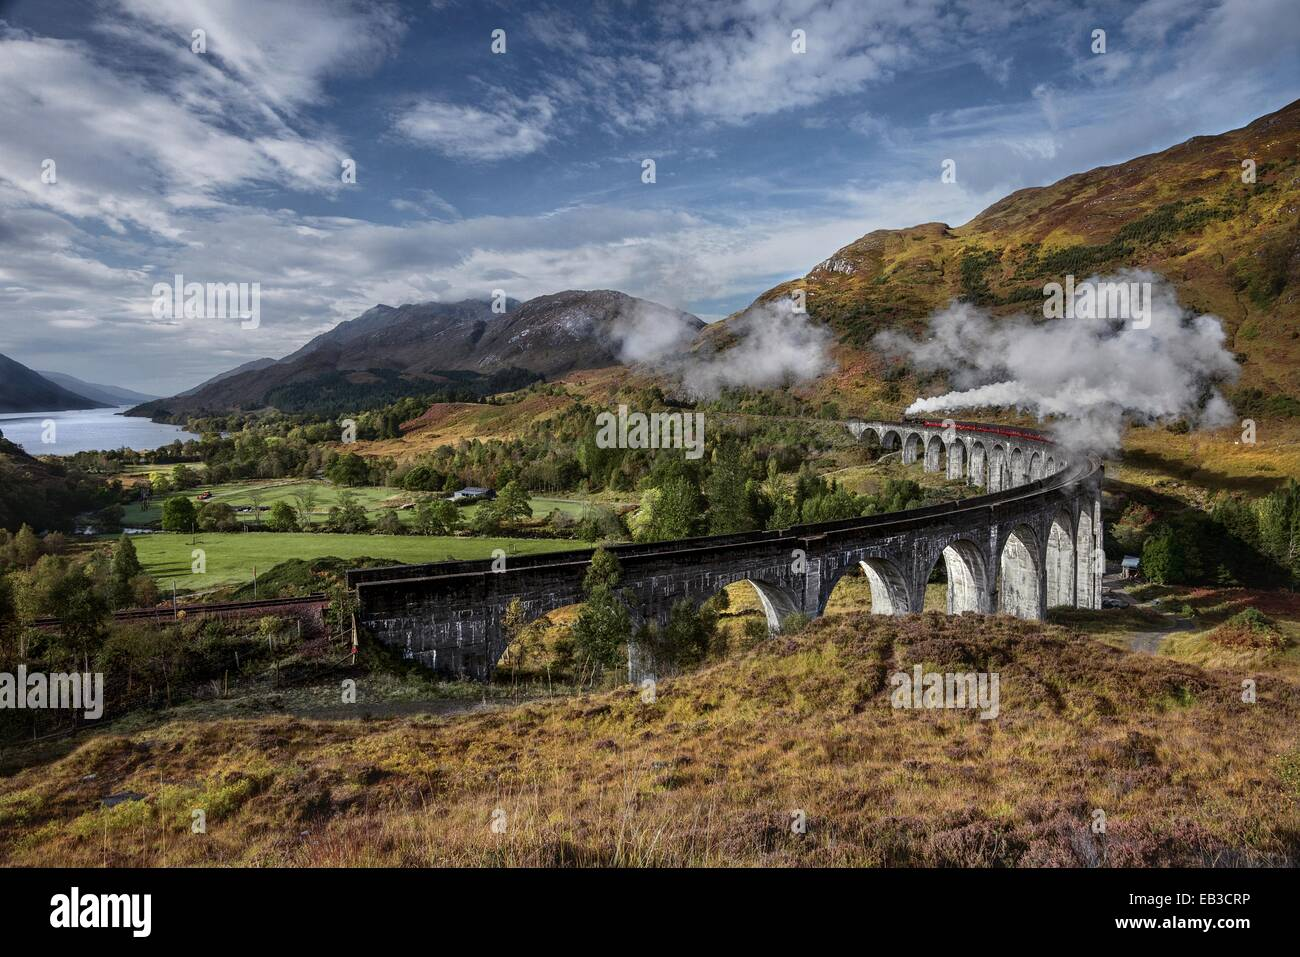 Royaume-uni, Ecosse, Elevated view de passage Express Jacobite viaduc de Glenfinnan Photo Stock